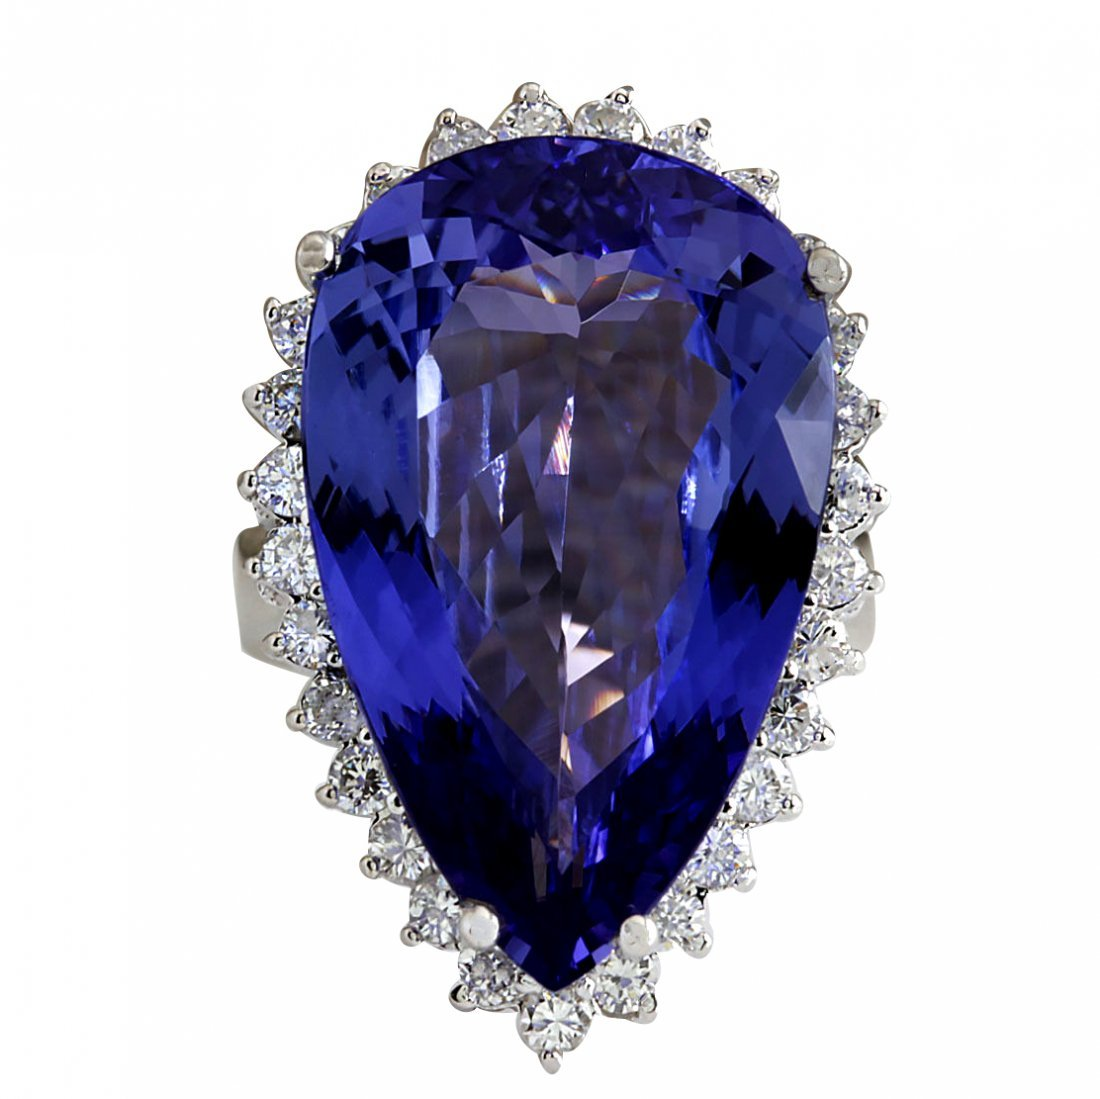 23.32CTW Natural Tanzanite Diamond Ring 14K Solid White